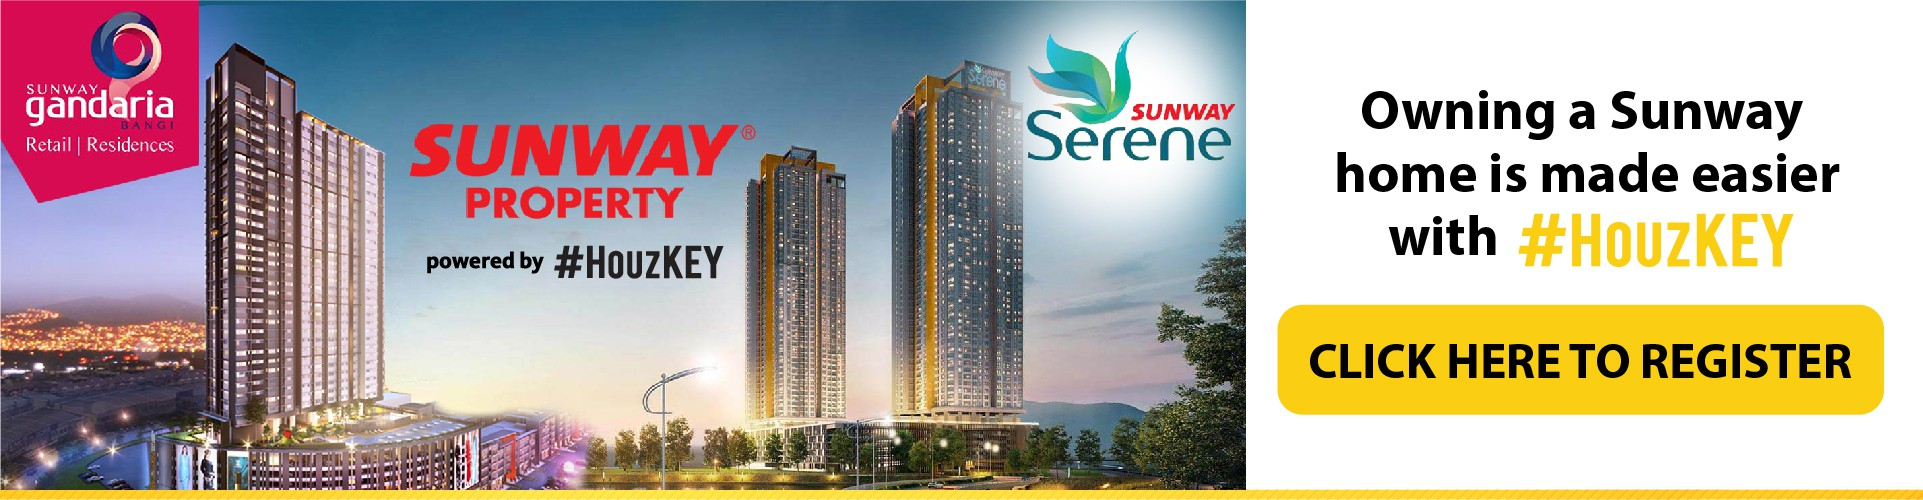 Sunway Property Homes - Register Here